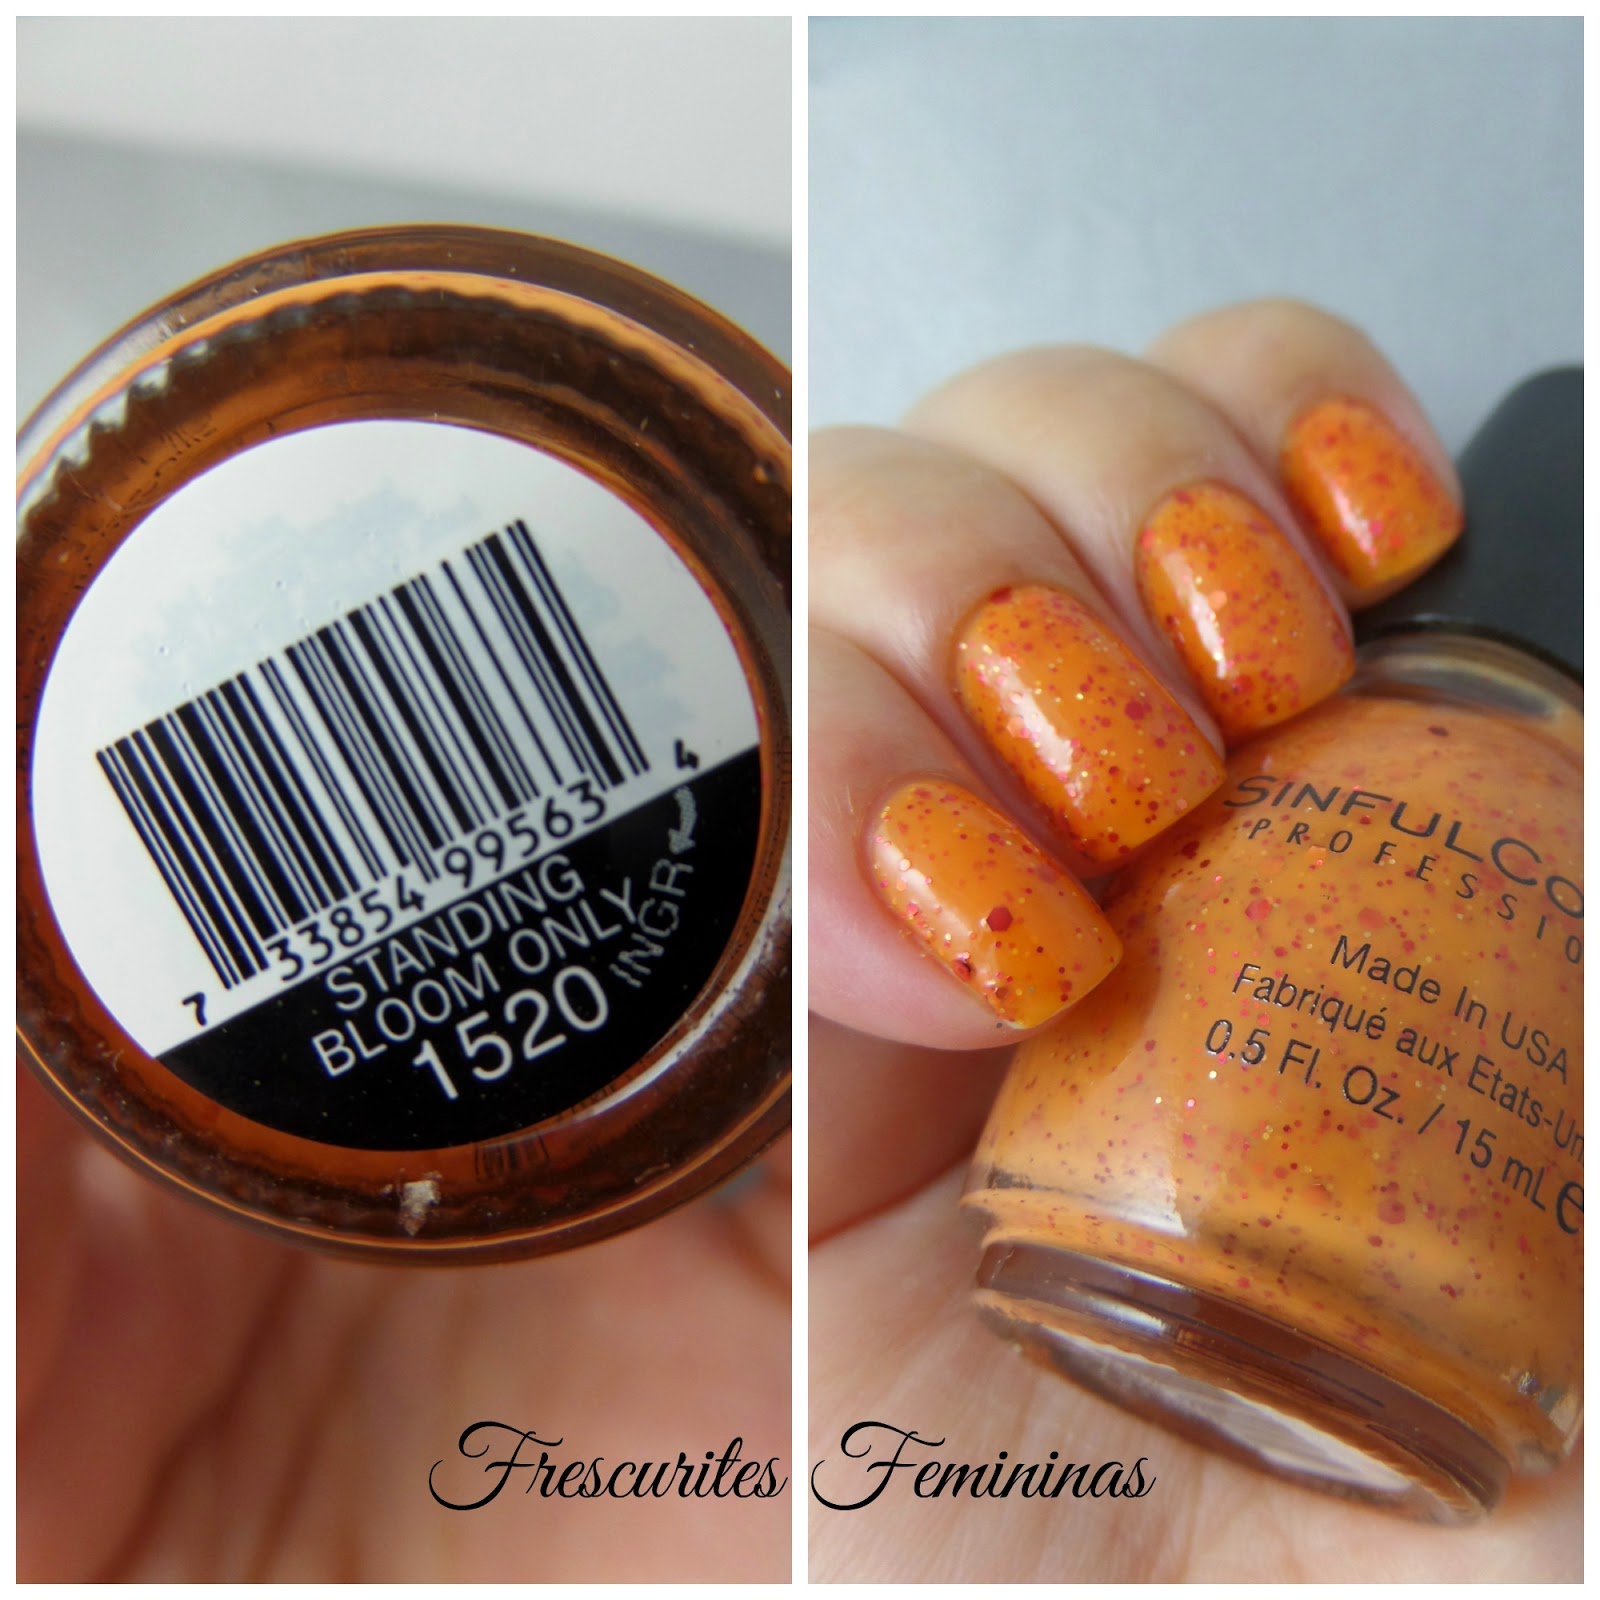 Sinful, Colors, Frescurites, Femininas, Standing, Bloom, Only, Nails, Nail, Polish, Esmalte